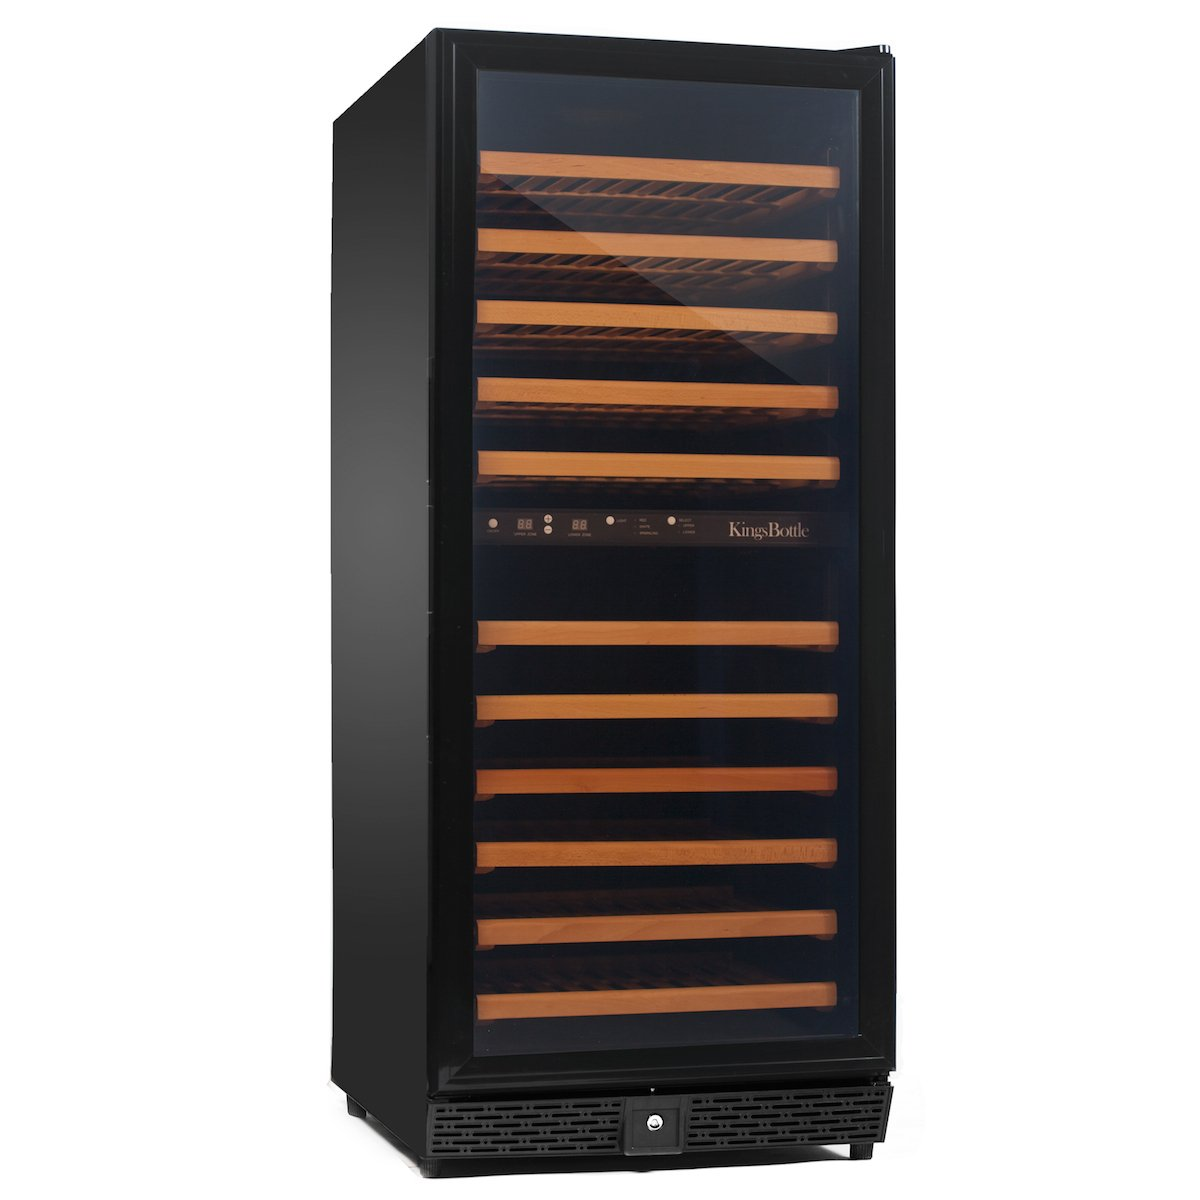 amazoncom kingsbottle  bottle dual zone wine cooler black  - amazoncom kingsbottle  bottle dual zone wine cooler black appliances